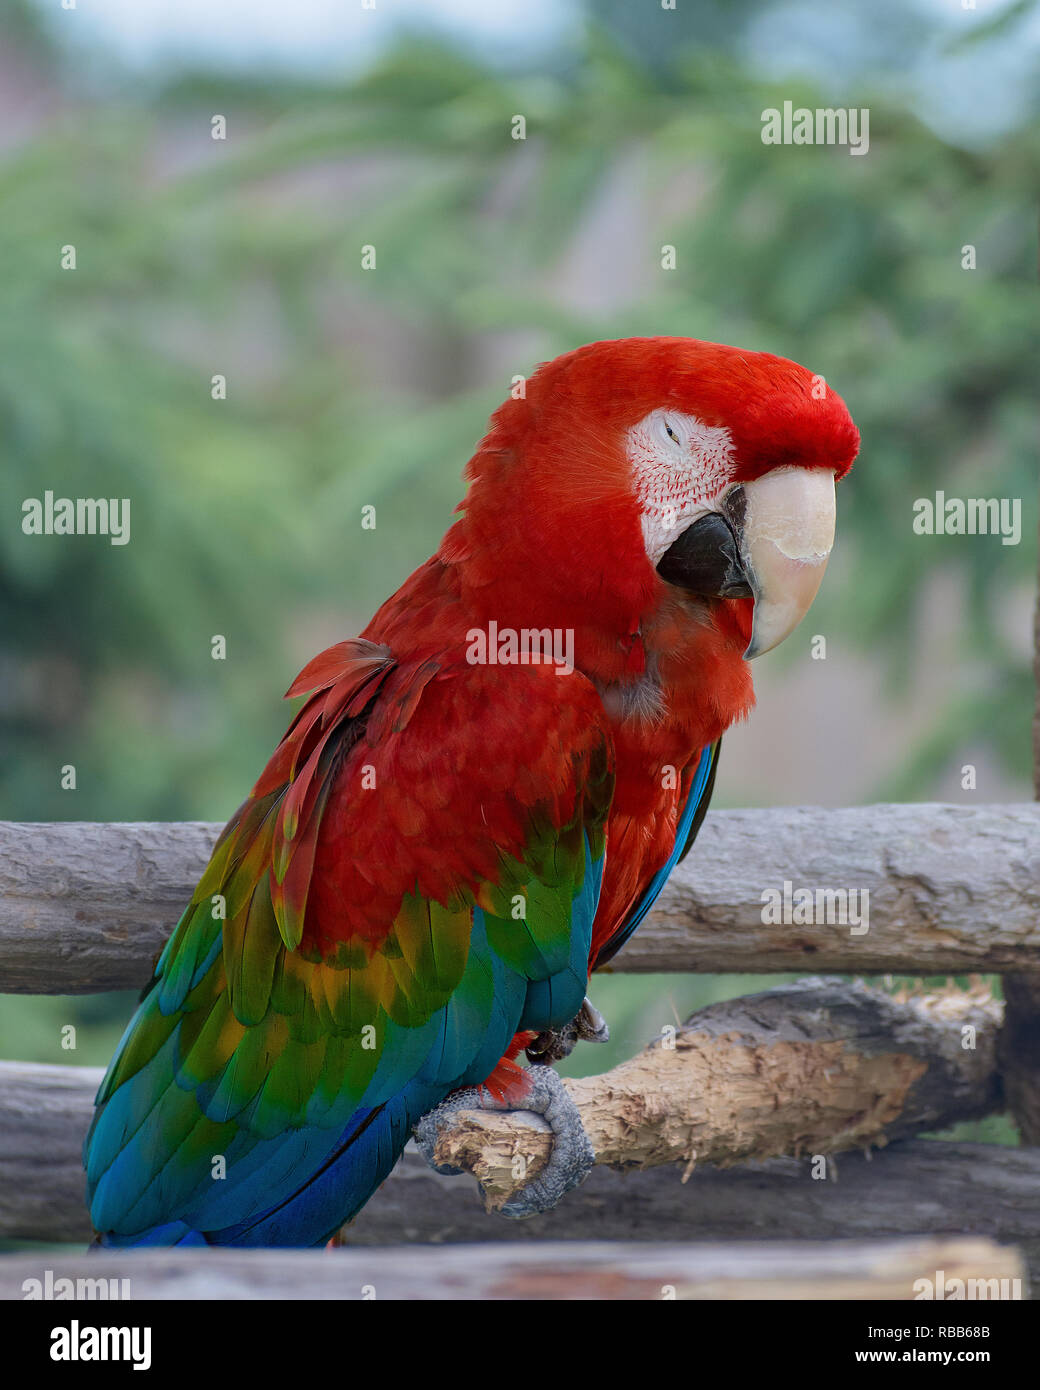 A parrot who is barely awake - Stock Image